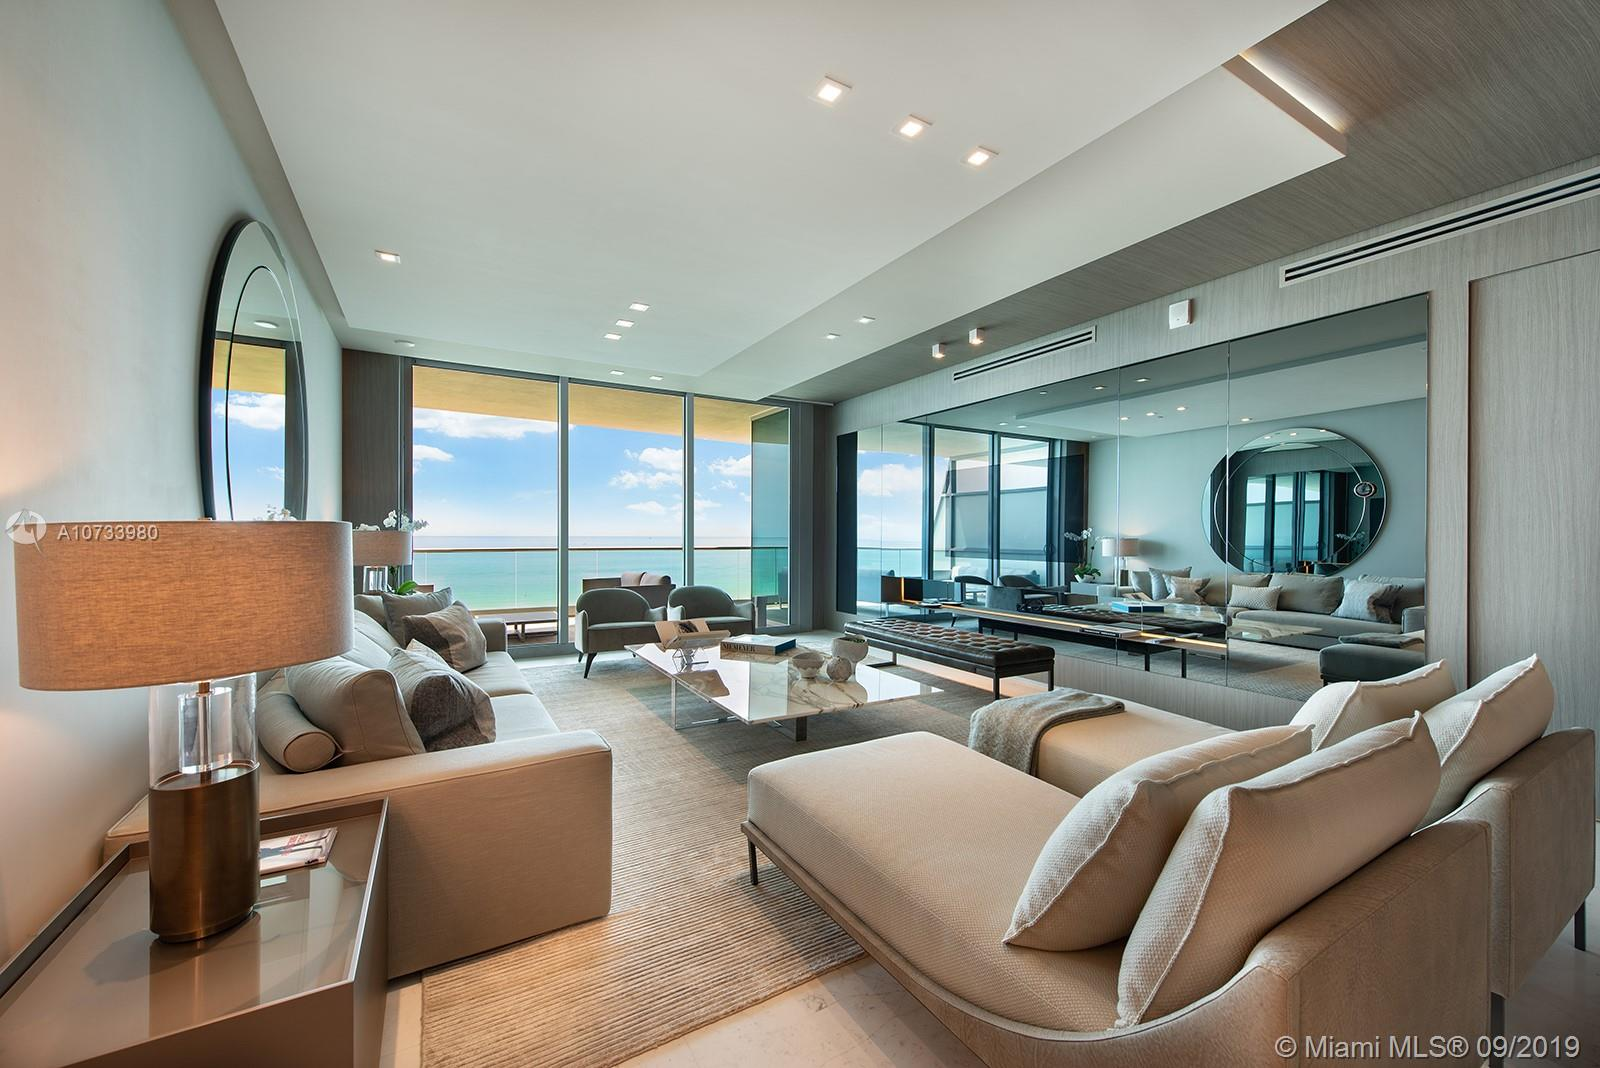 9349 Collins Ave, Unit #605 Luxury Real Estate